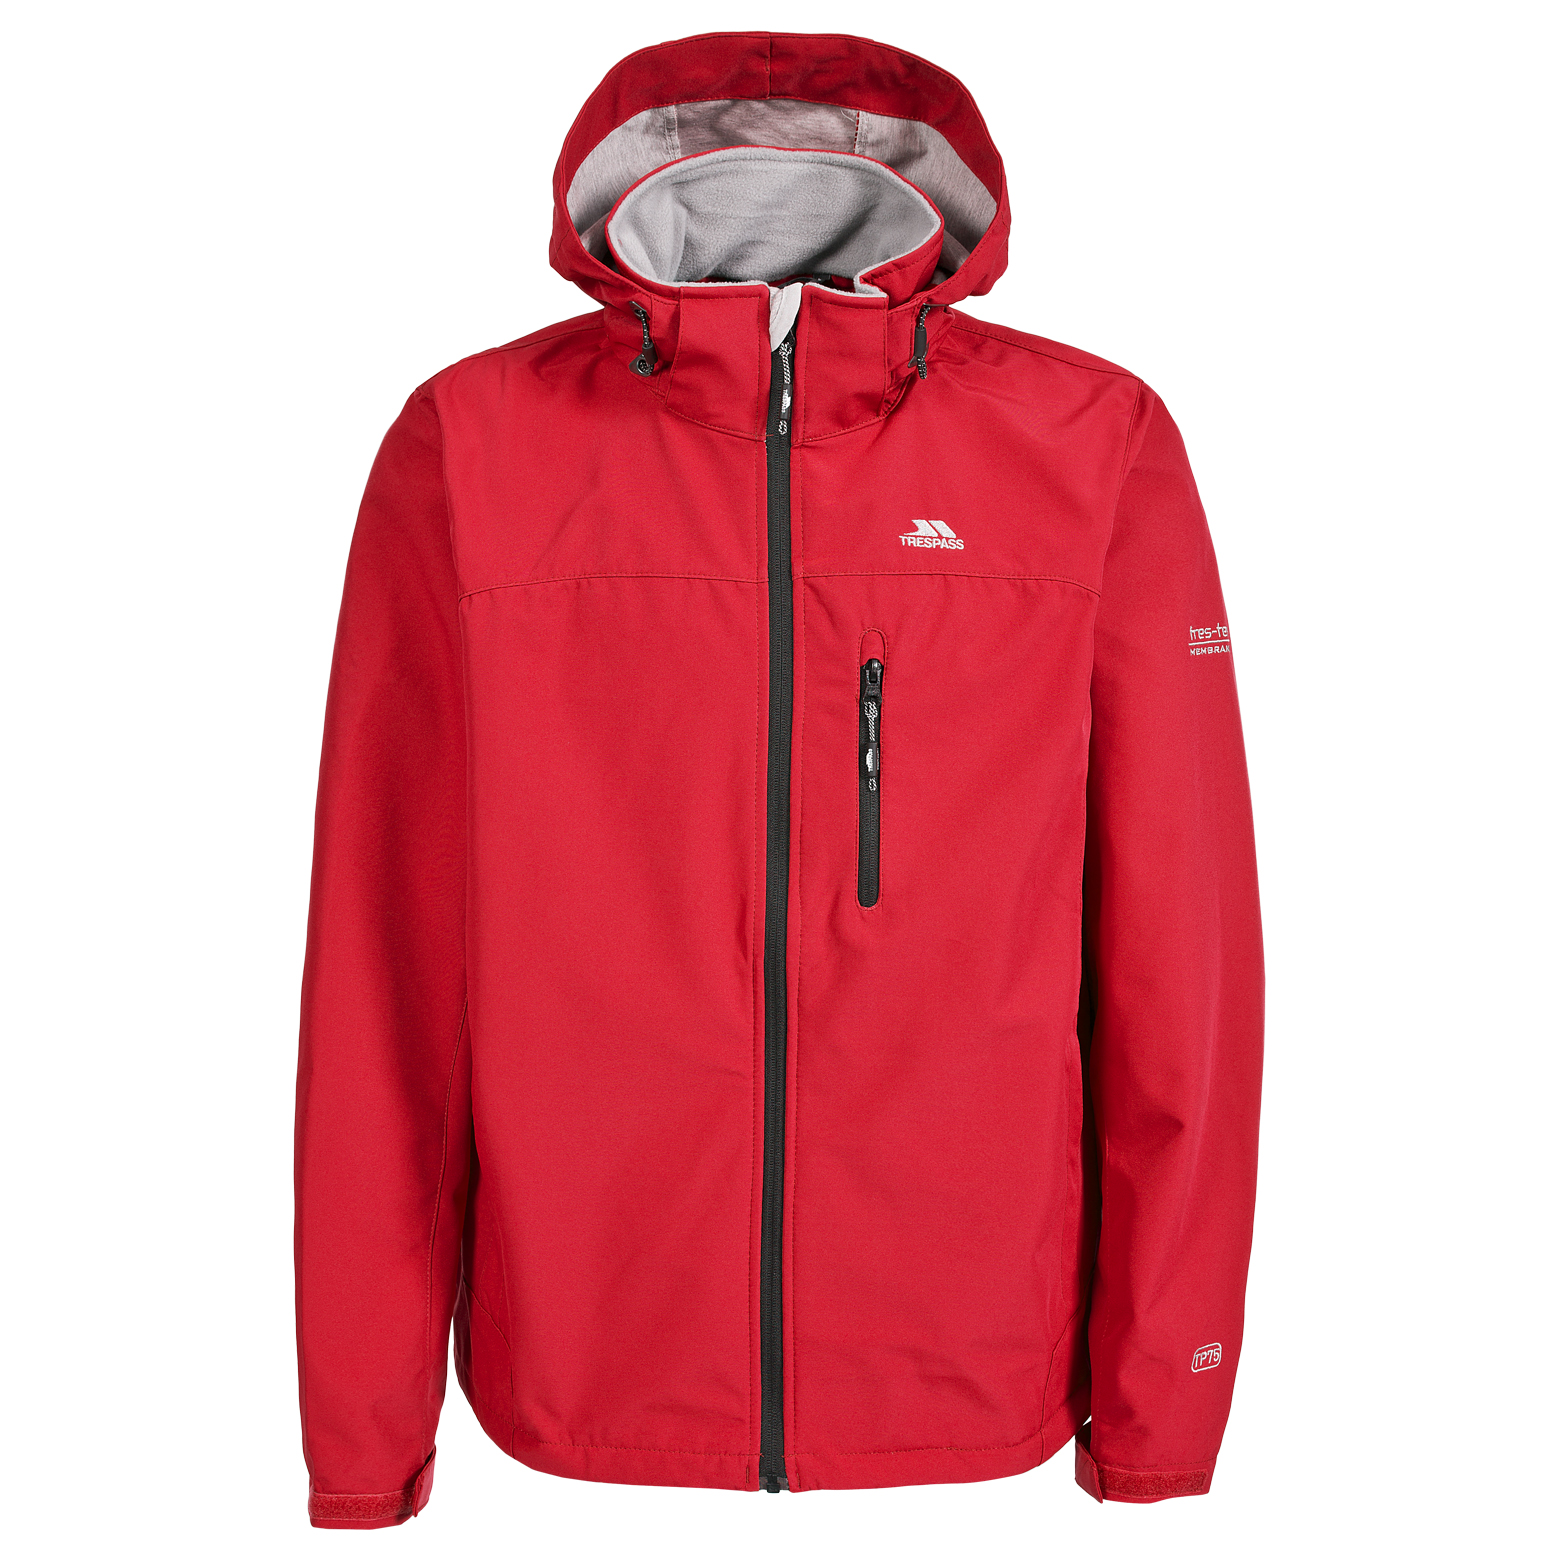 Trespass-Stanford-Mens-Waterproof-Soft-Shell-Jacket-in-Black-Blue-Red-Olive thumbnail 17